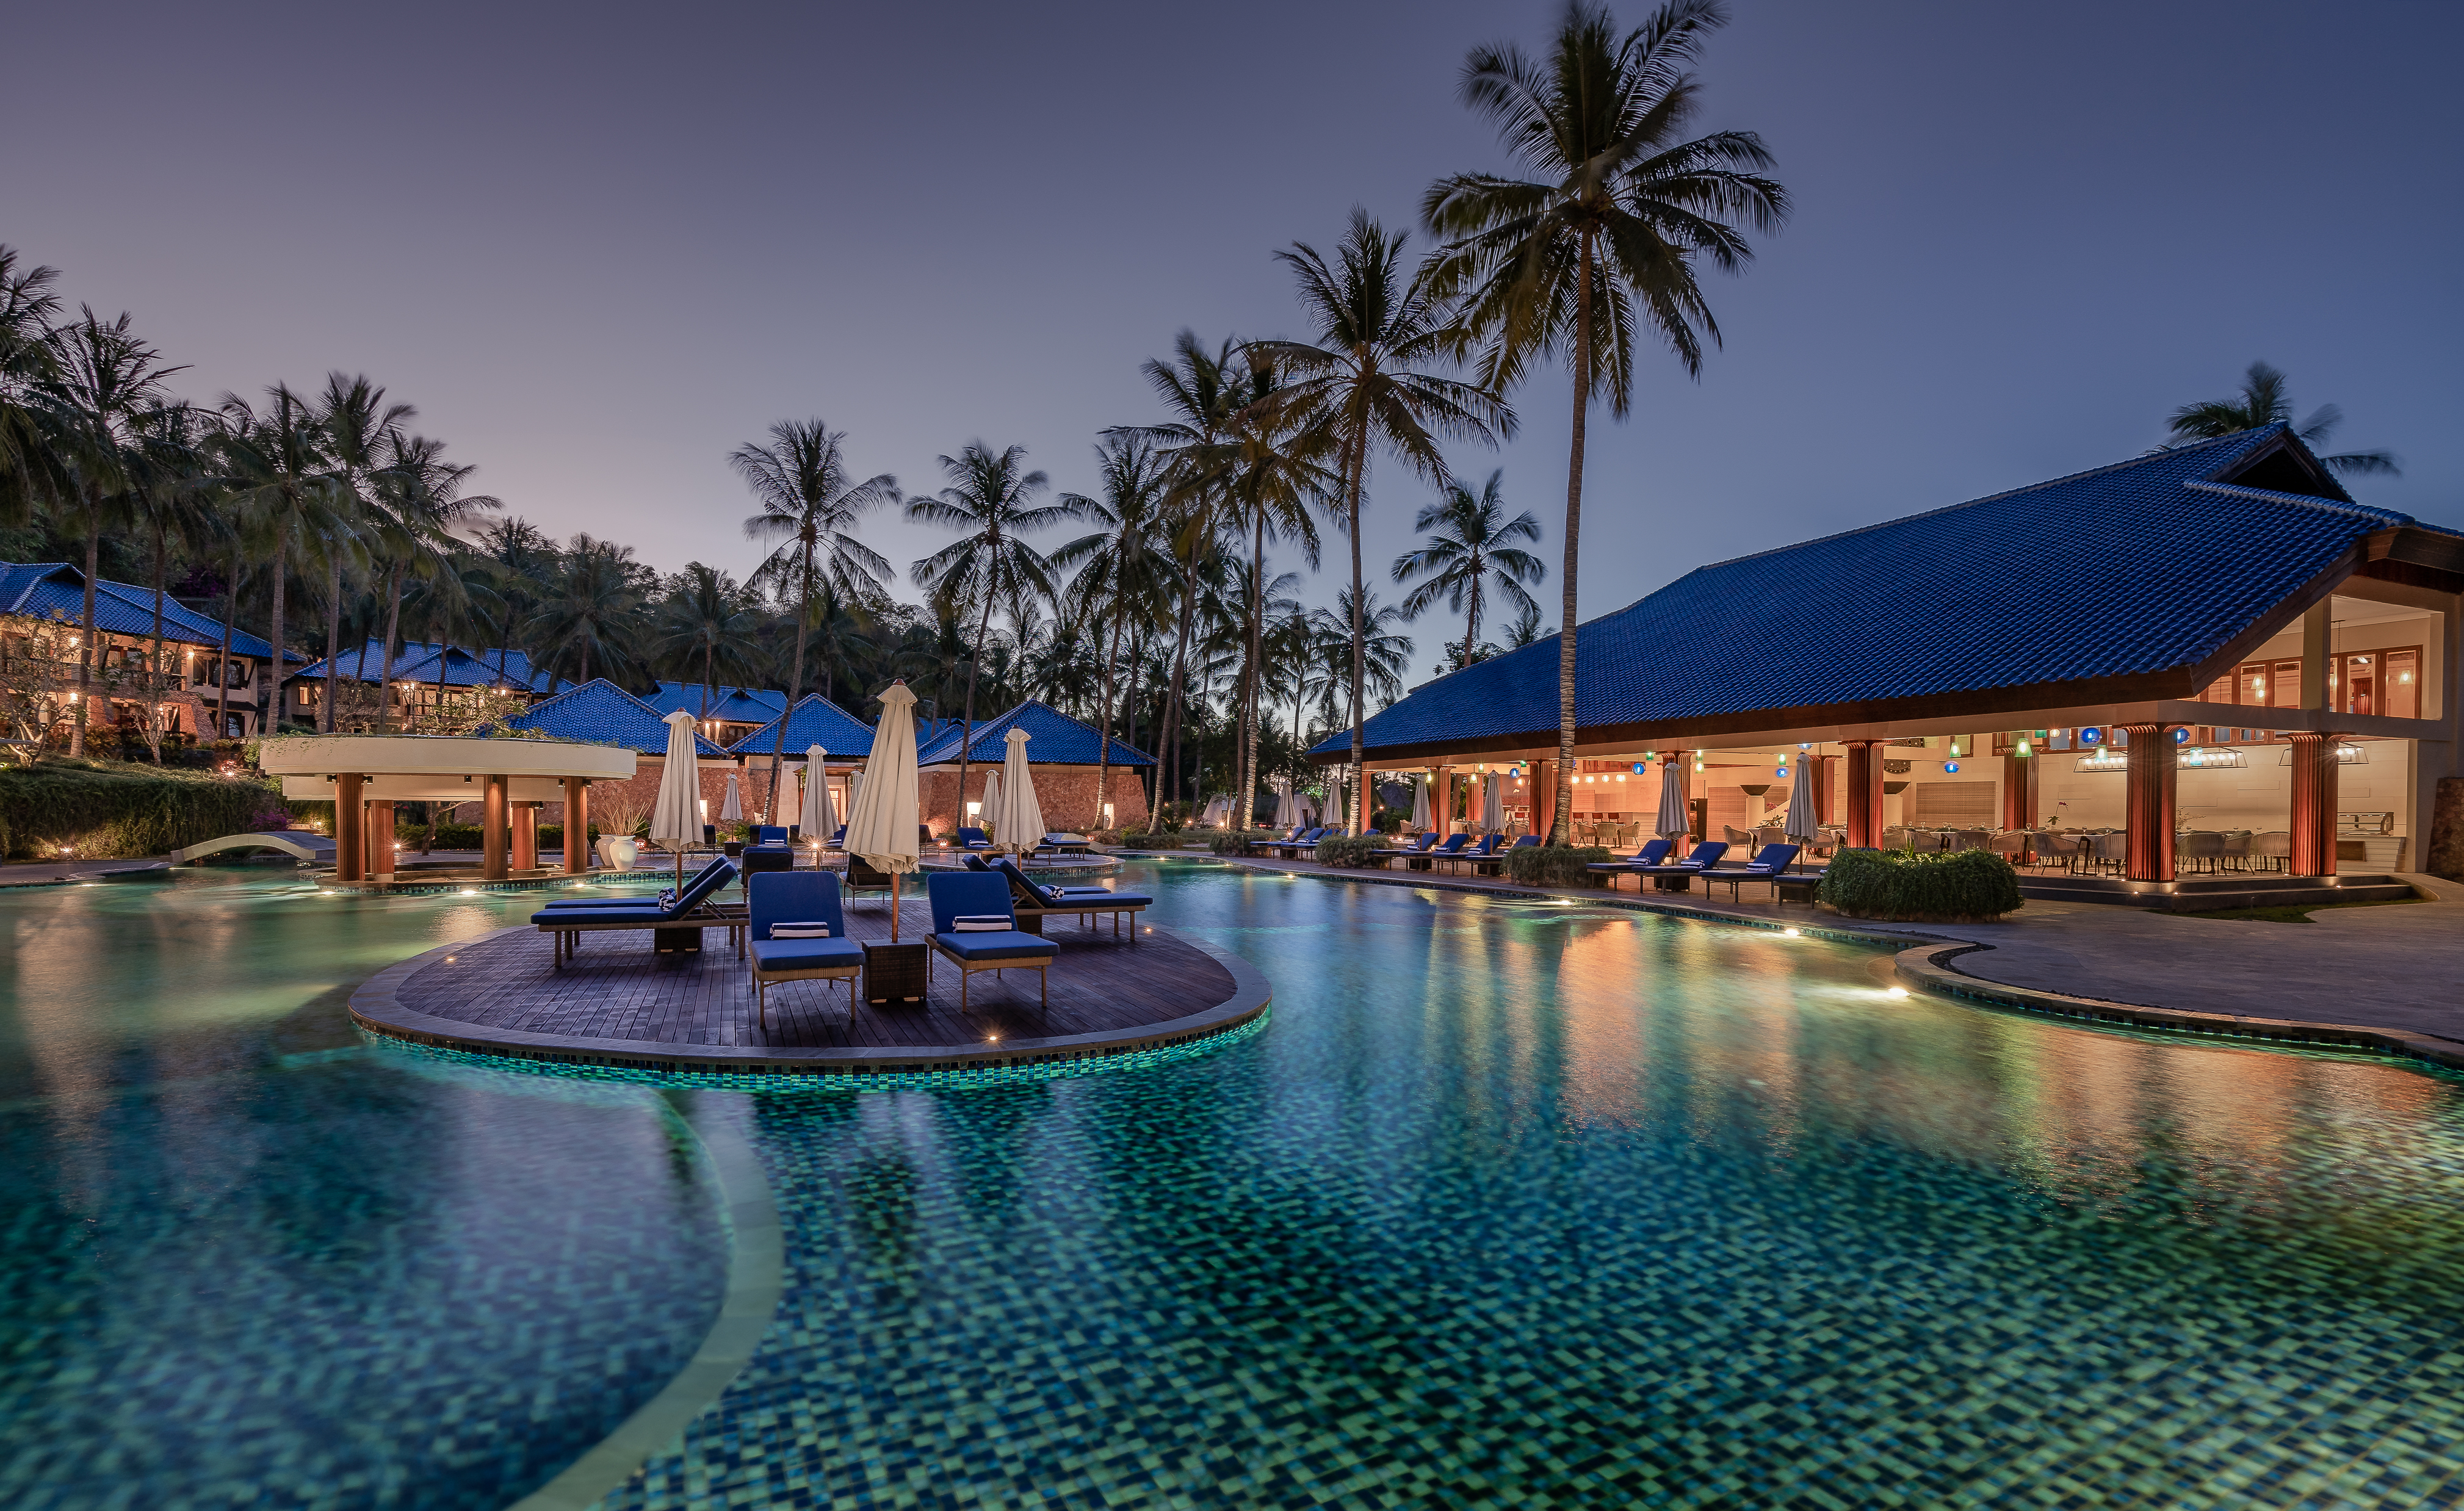 After earthquakes lombok indonesia gets new resort hotel management - Lombok dive resort ...